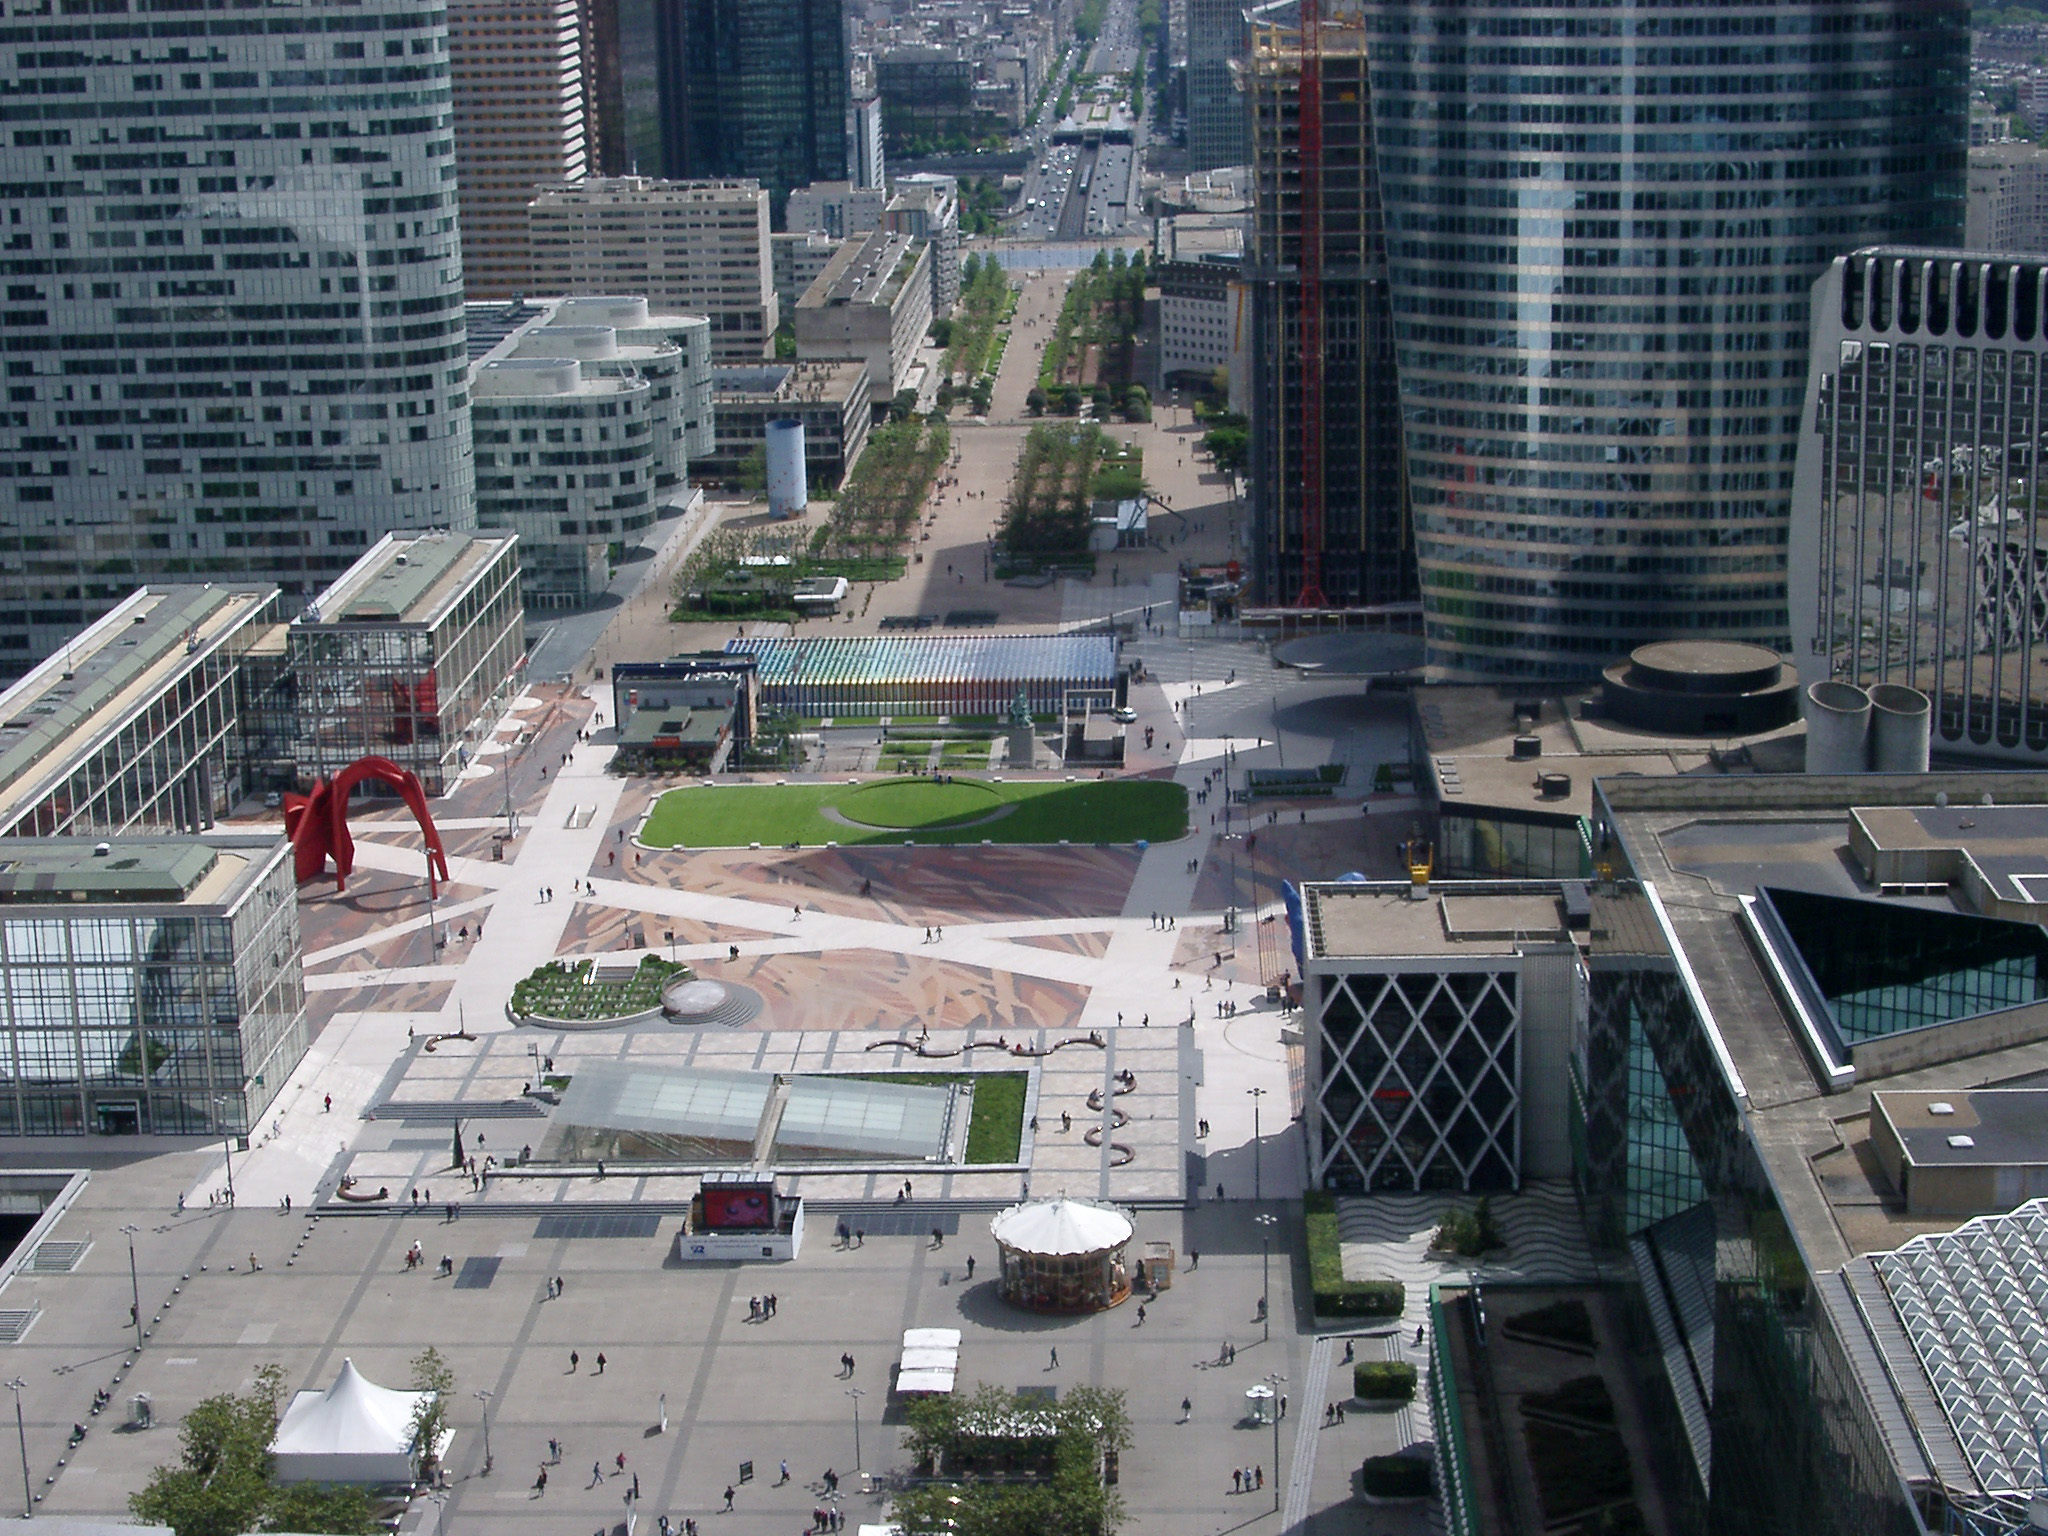 Overview of Central Esplanade in La Defense Business District, Paris, France